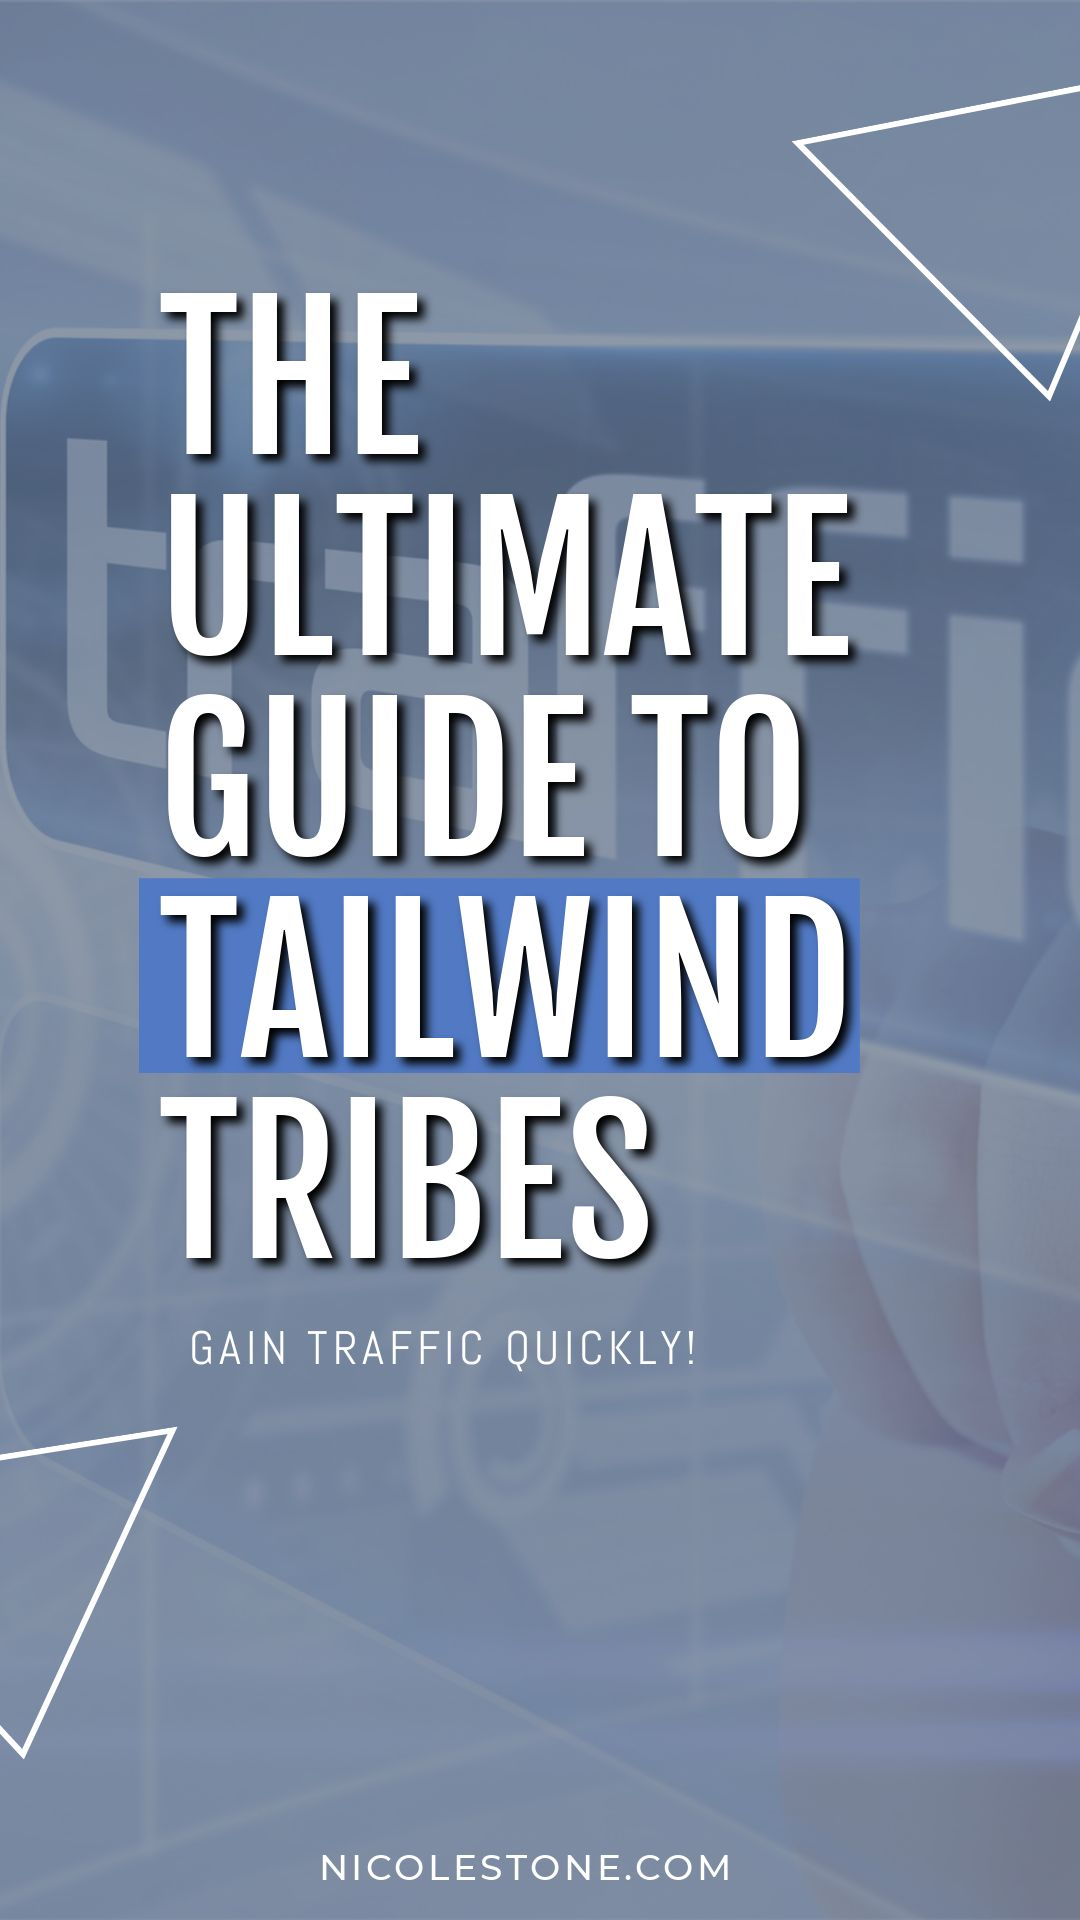 Learn how to use Tailwind Tribes to boost your traffic! Everything you need to know about Tailwind Tribes is in this guide - boost your Pinterest traffic! #pinterest #pinteresttraffic #tailwindtribes #marketing #socialmedia #blogging #blogtips